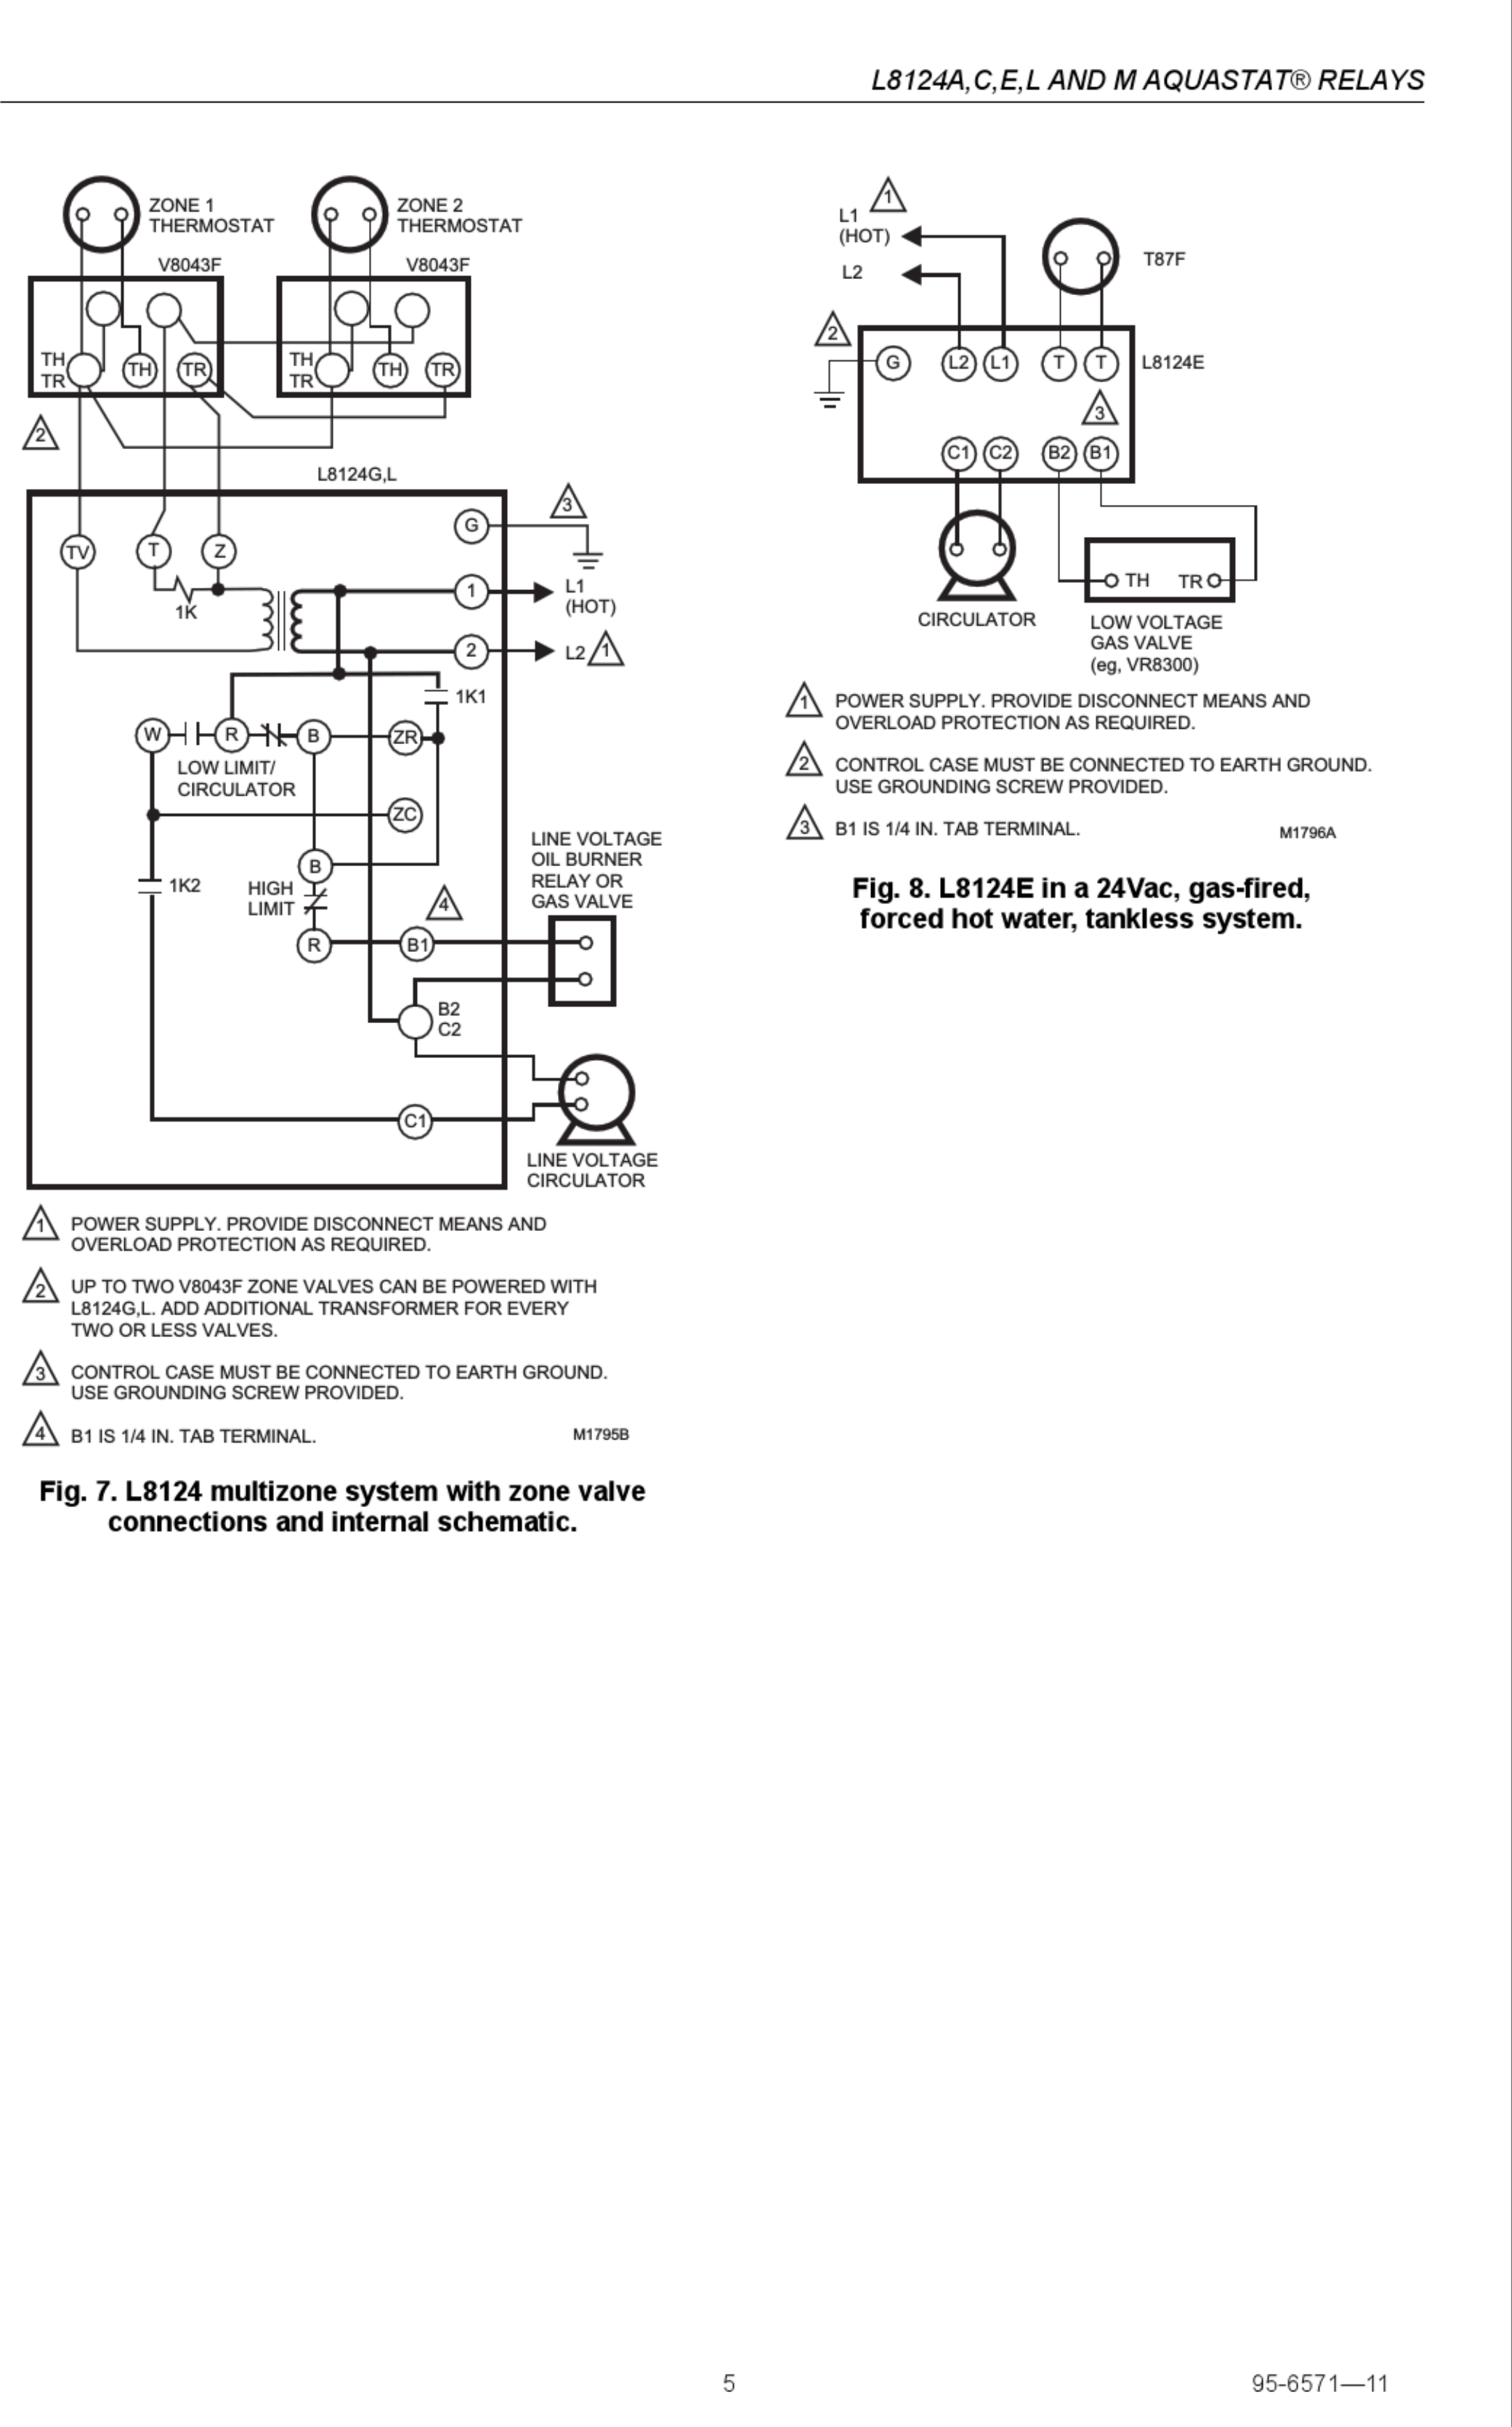 Honeywell Relay R B Wiring Diagram